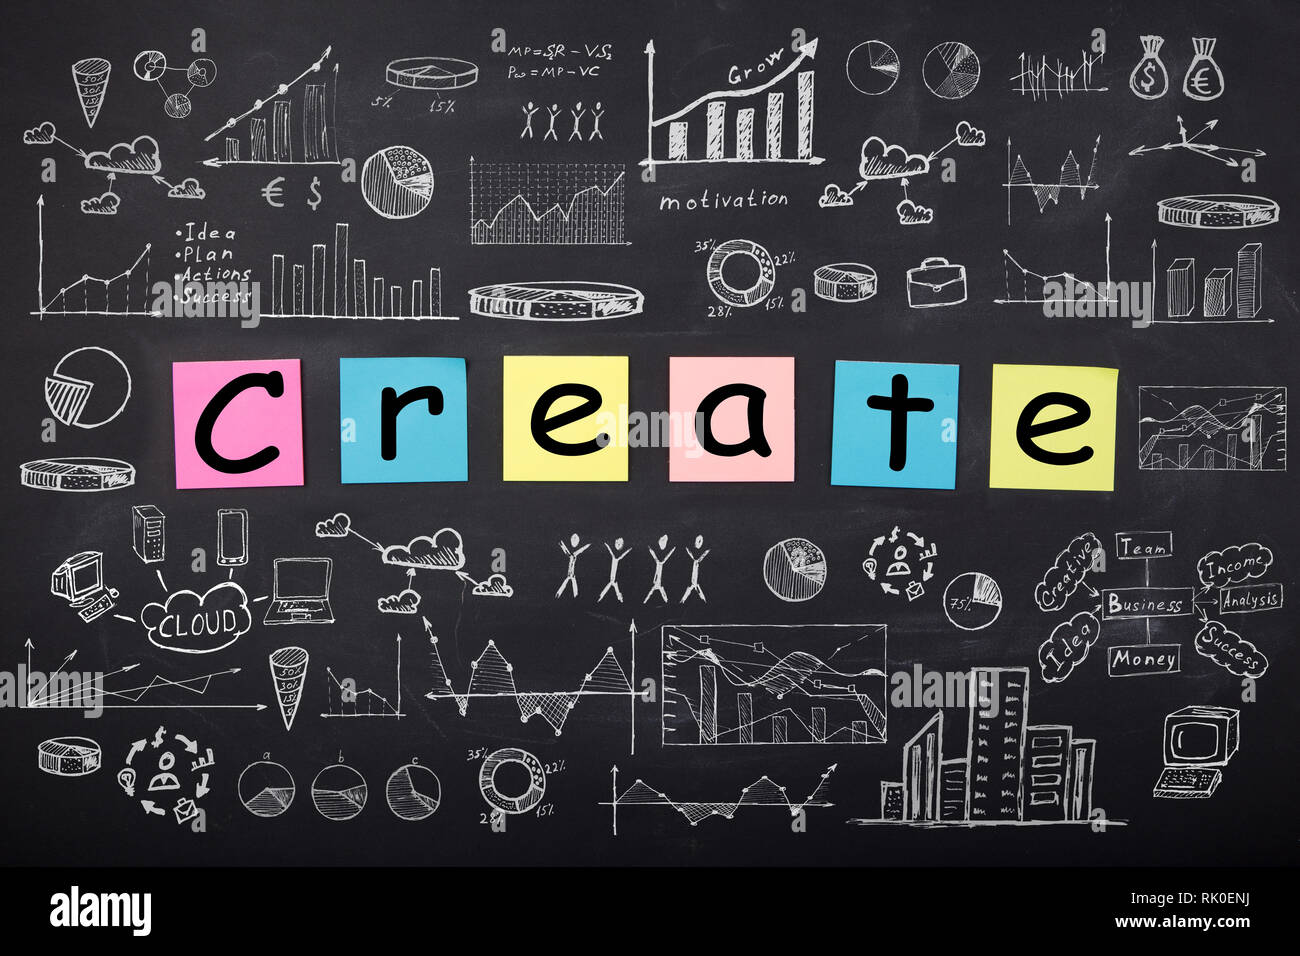 Business concept word create sketch with schemes and graphs on chalkboard